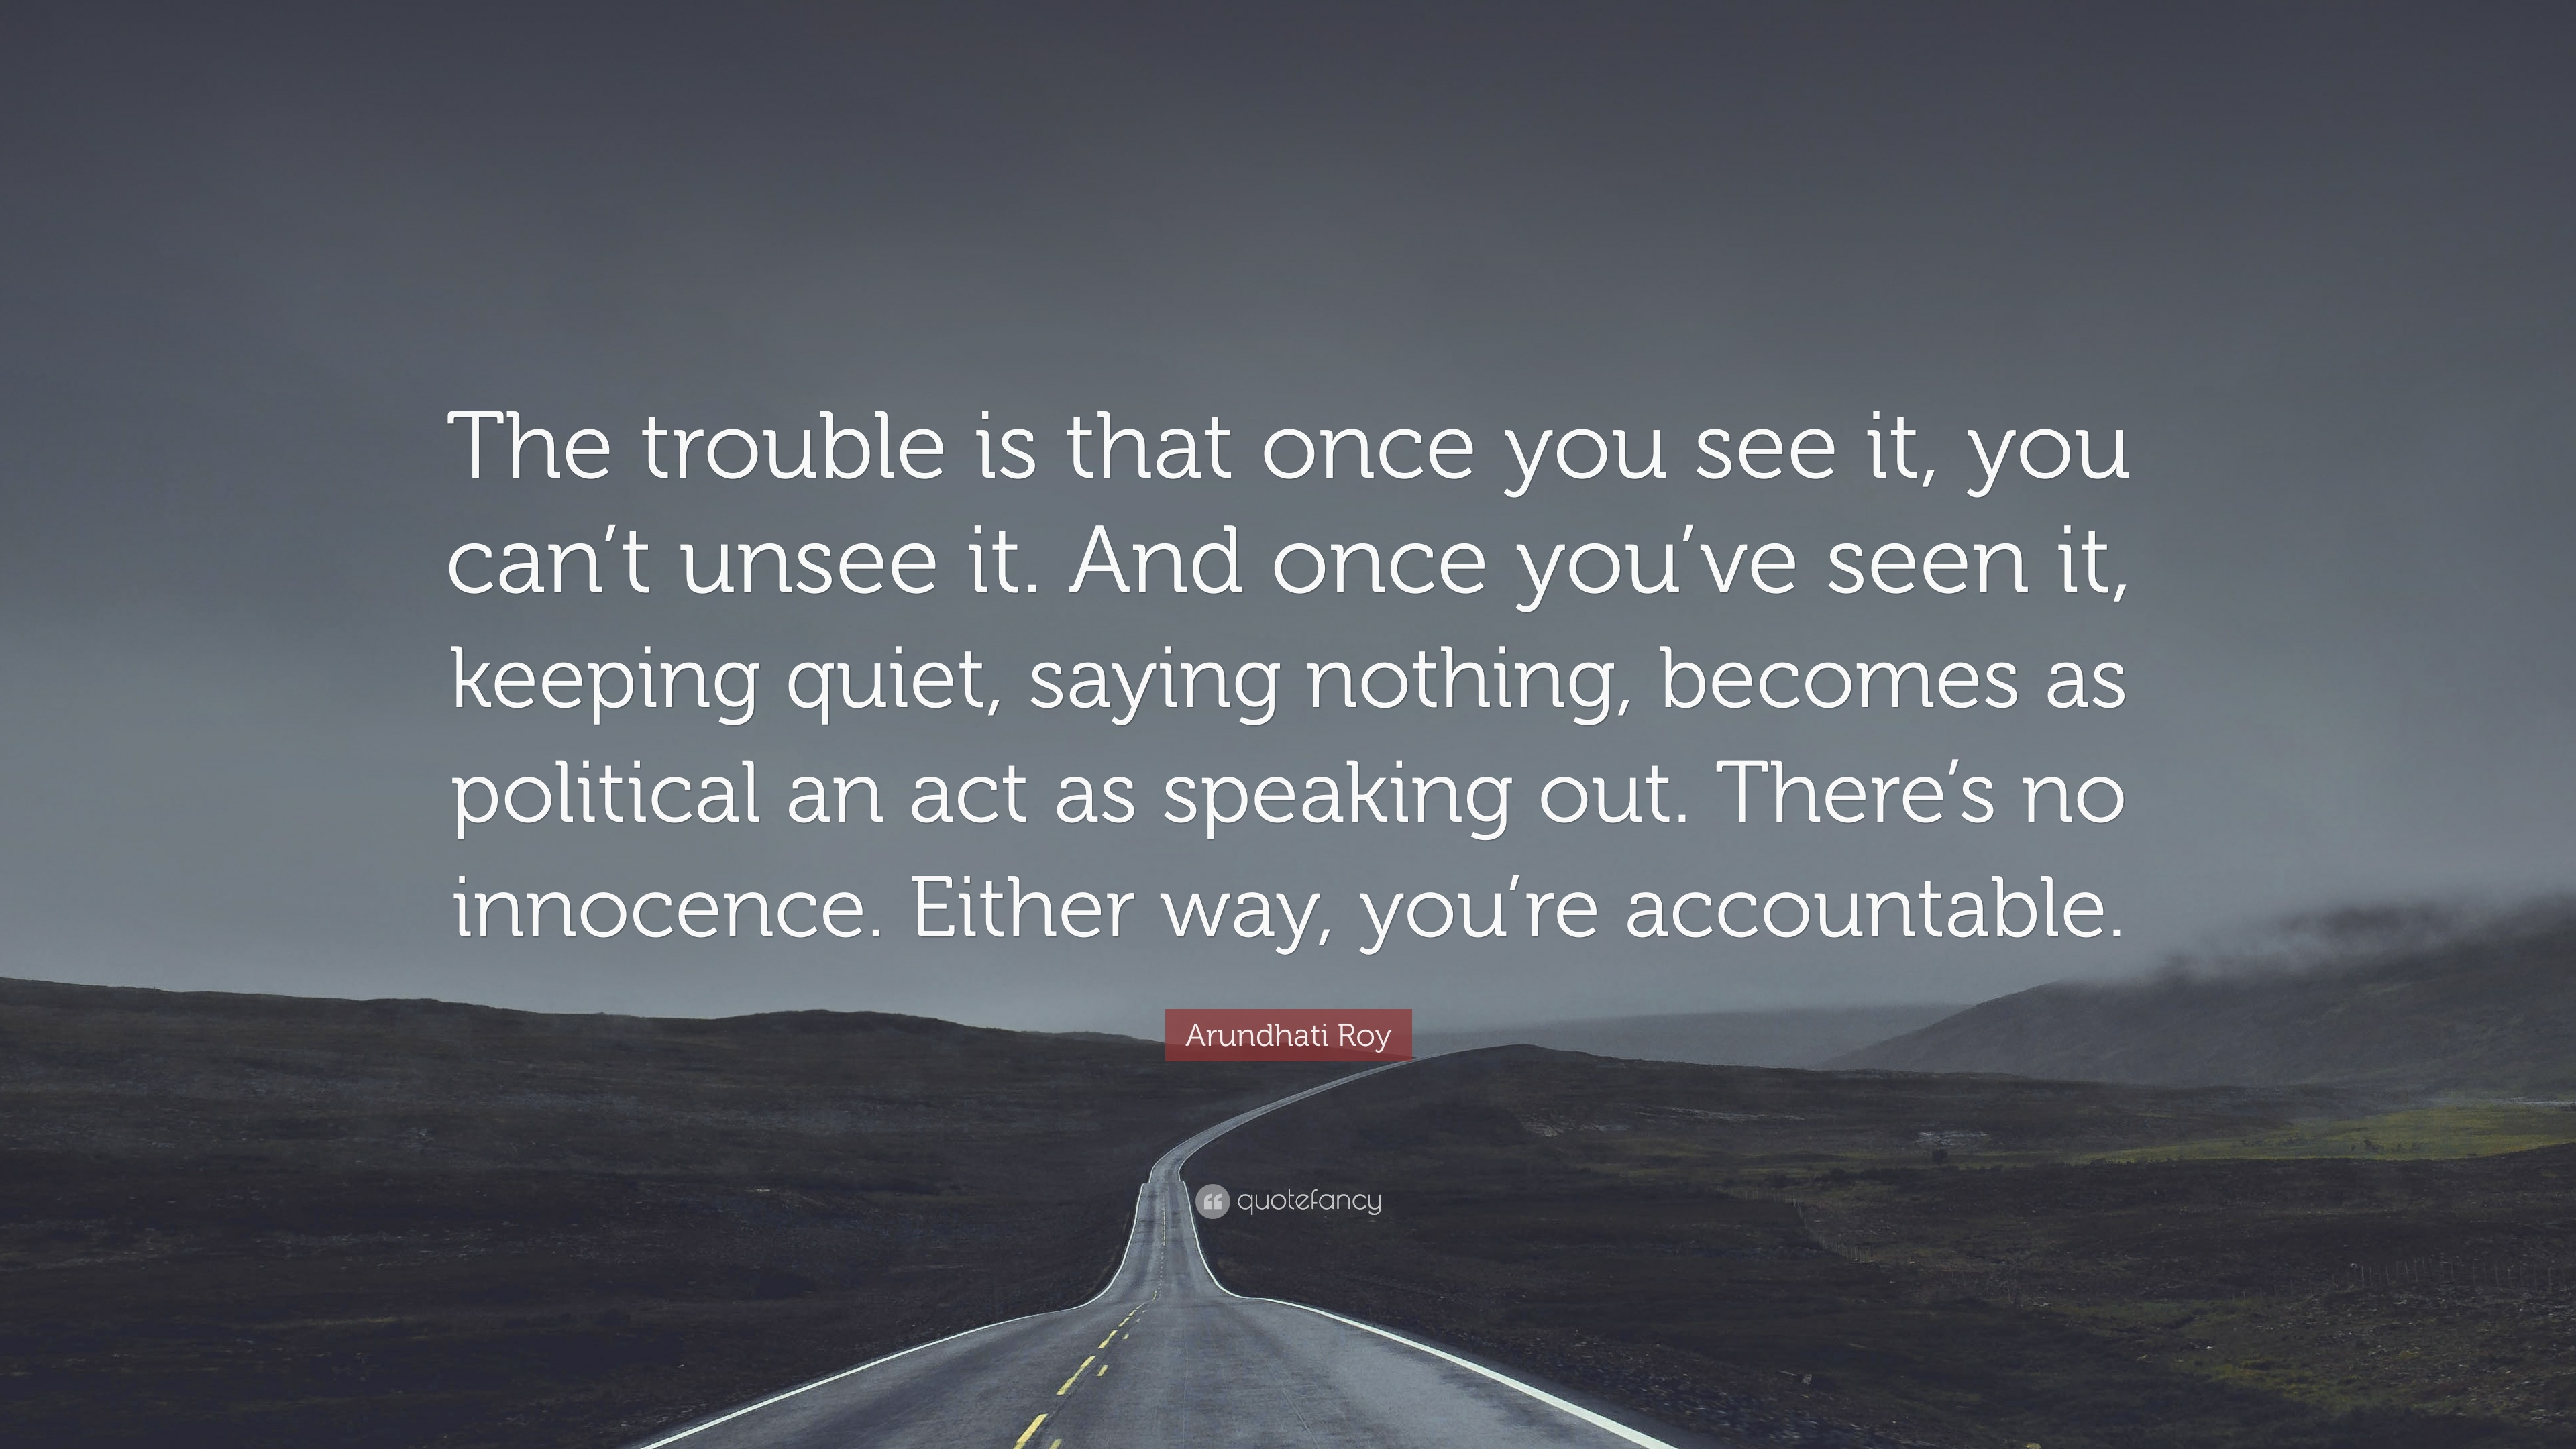 arundhati roy quote the trouble is that once you see it you can t